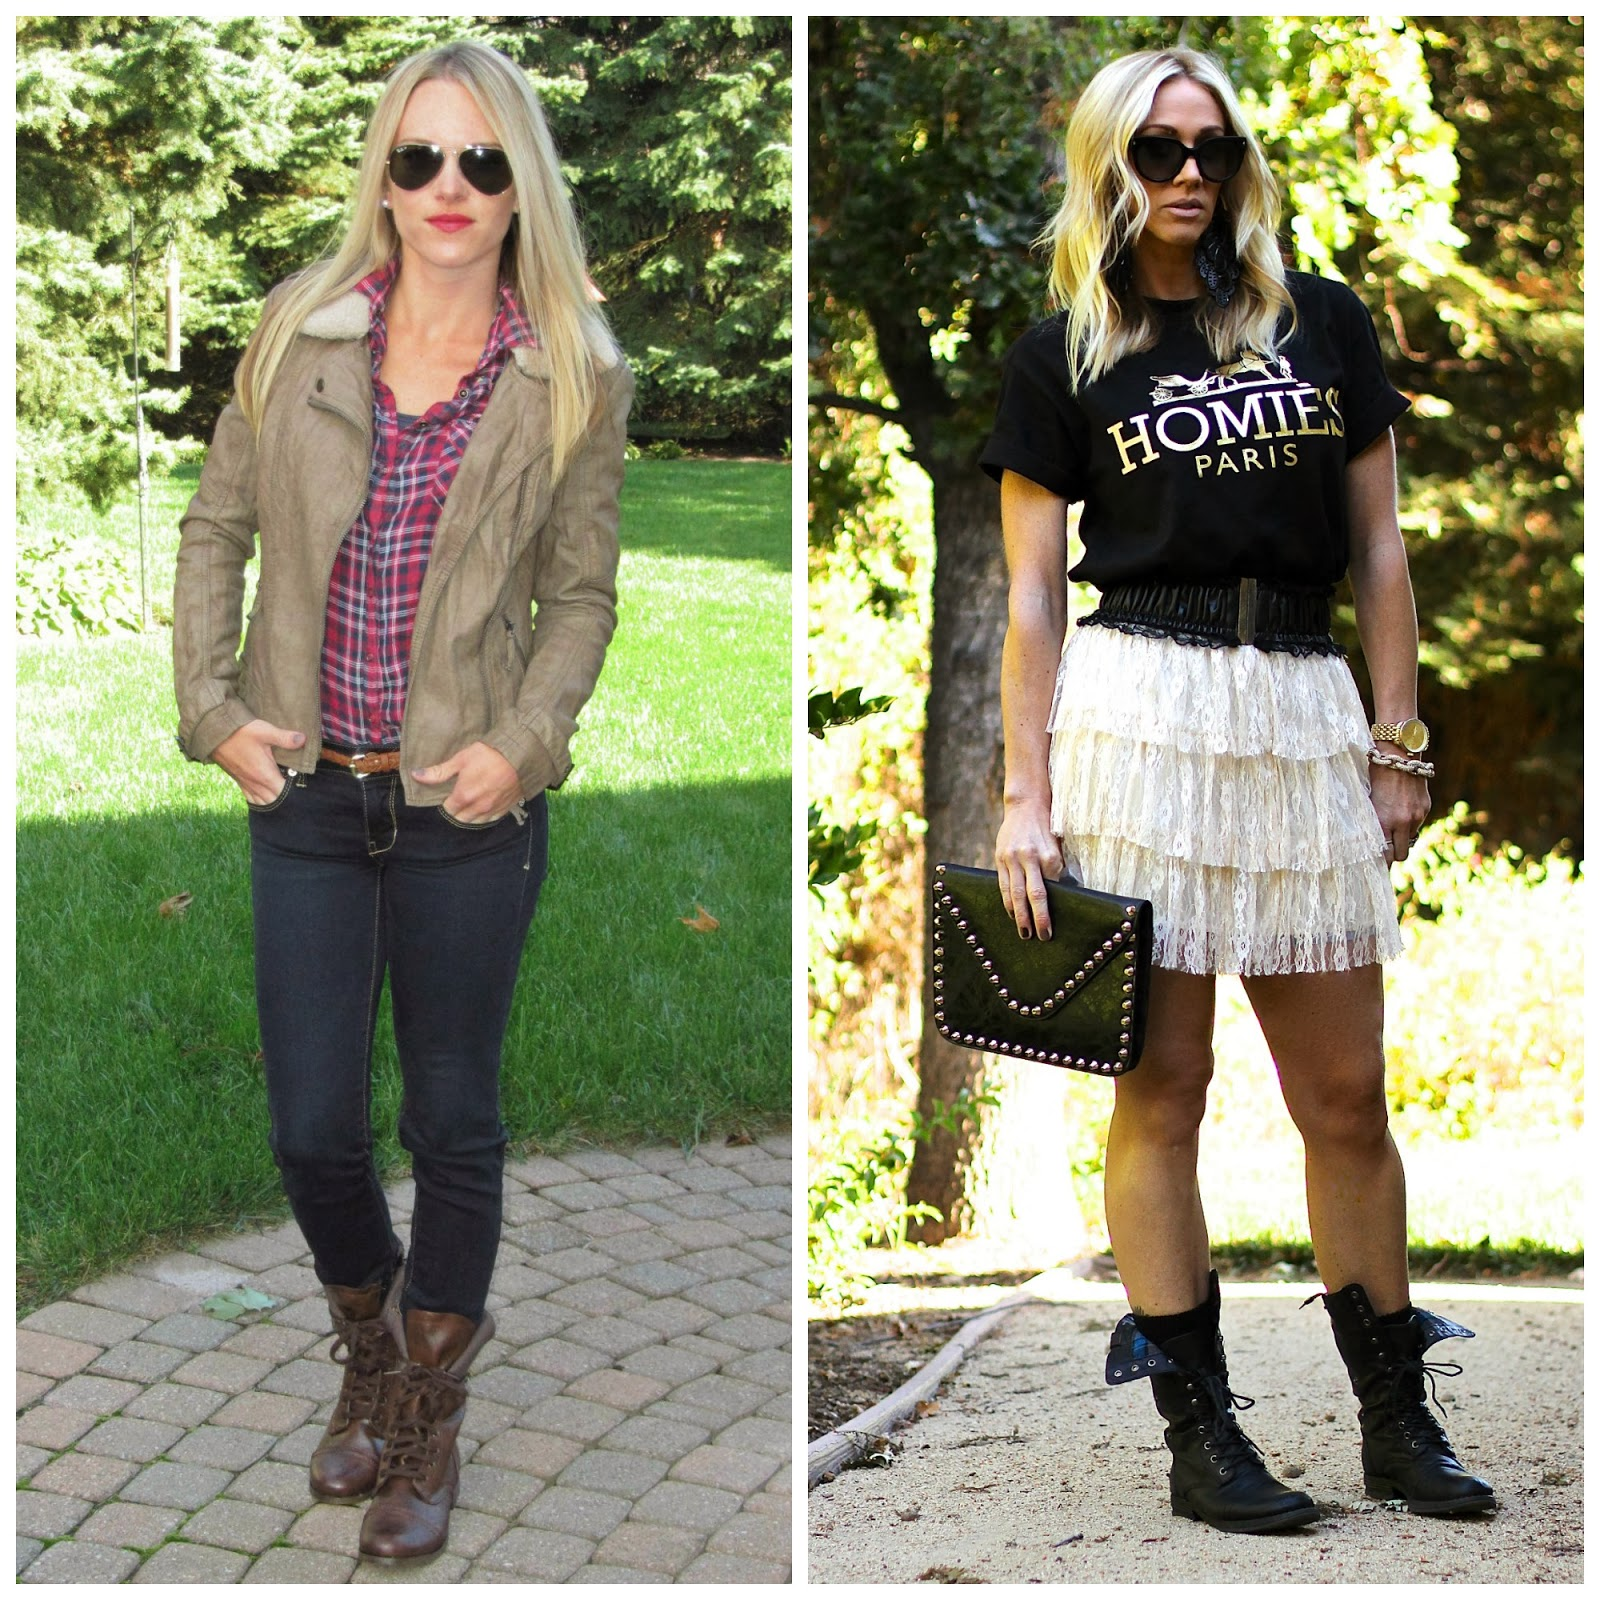 The Parlor Girl: How To Style Combat Boots